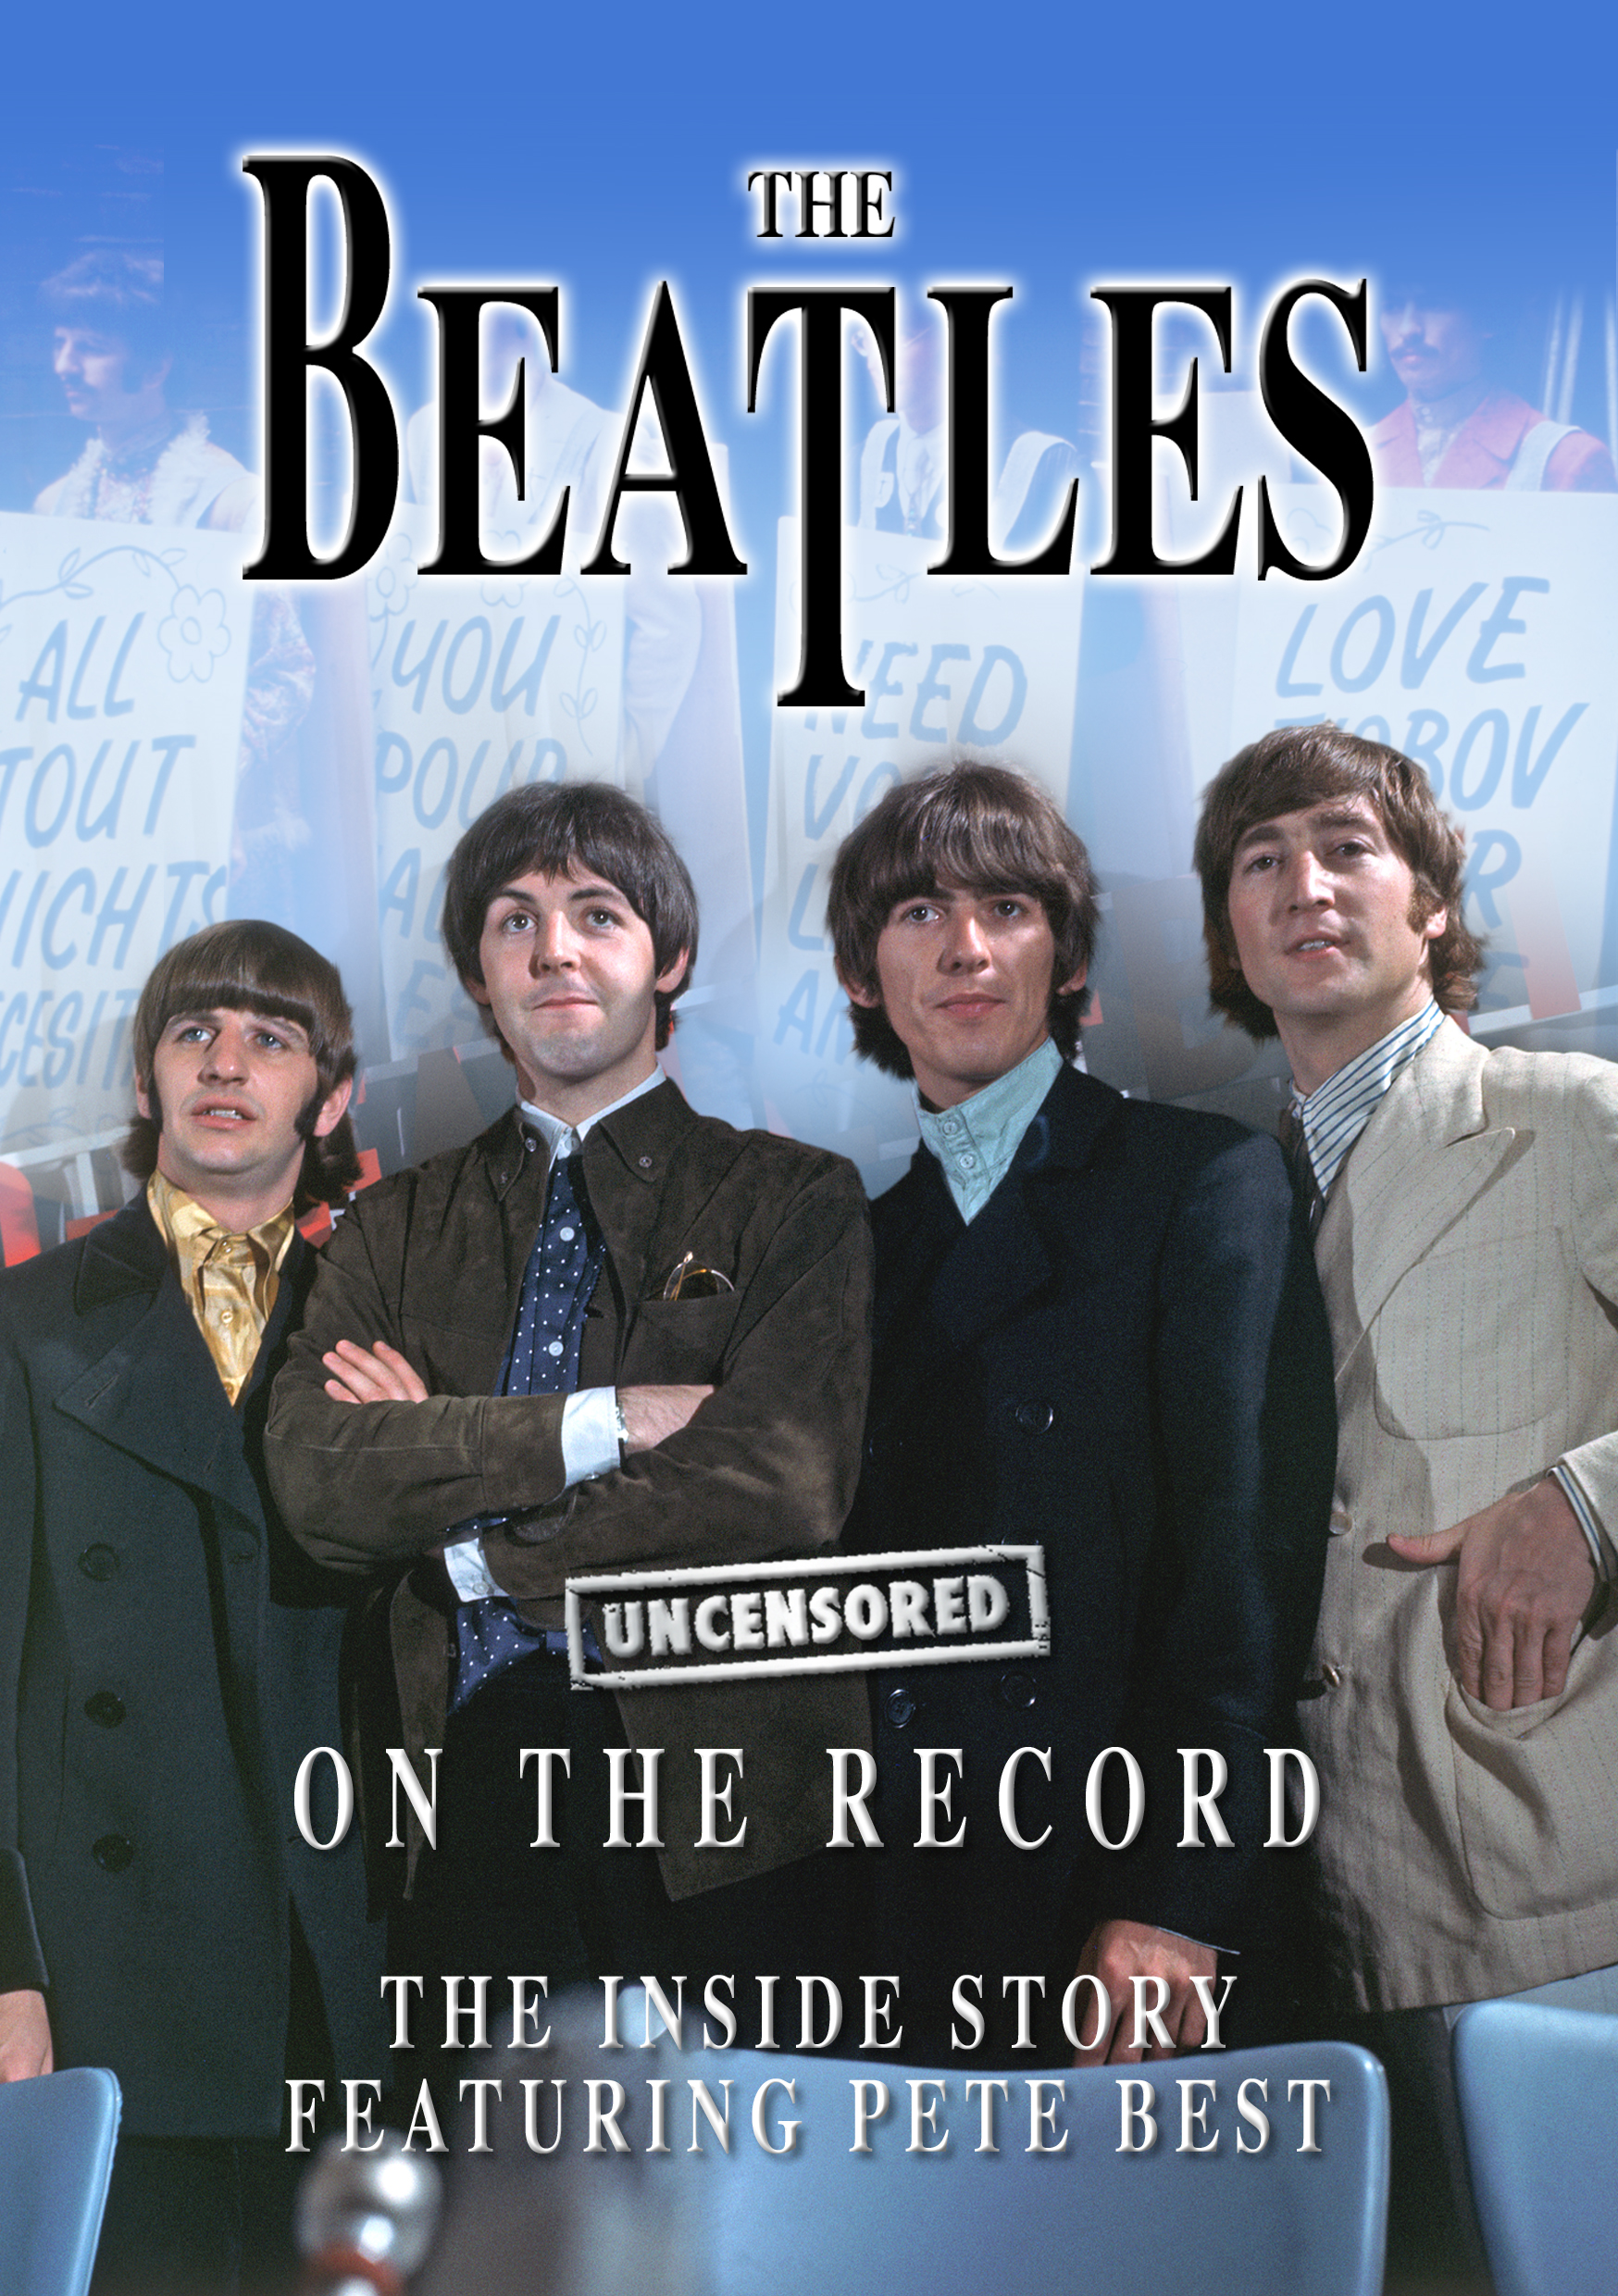 The Beatles - Uncensored On the Record